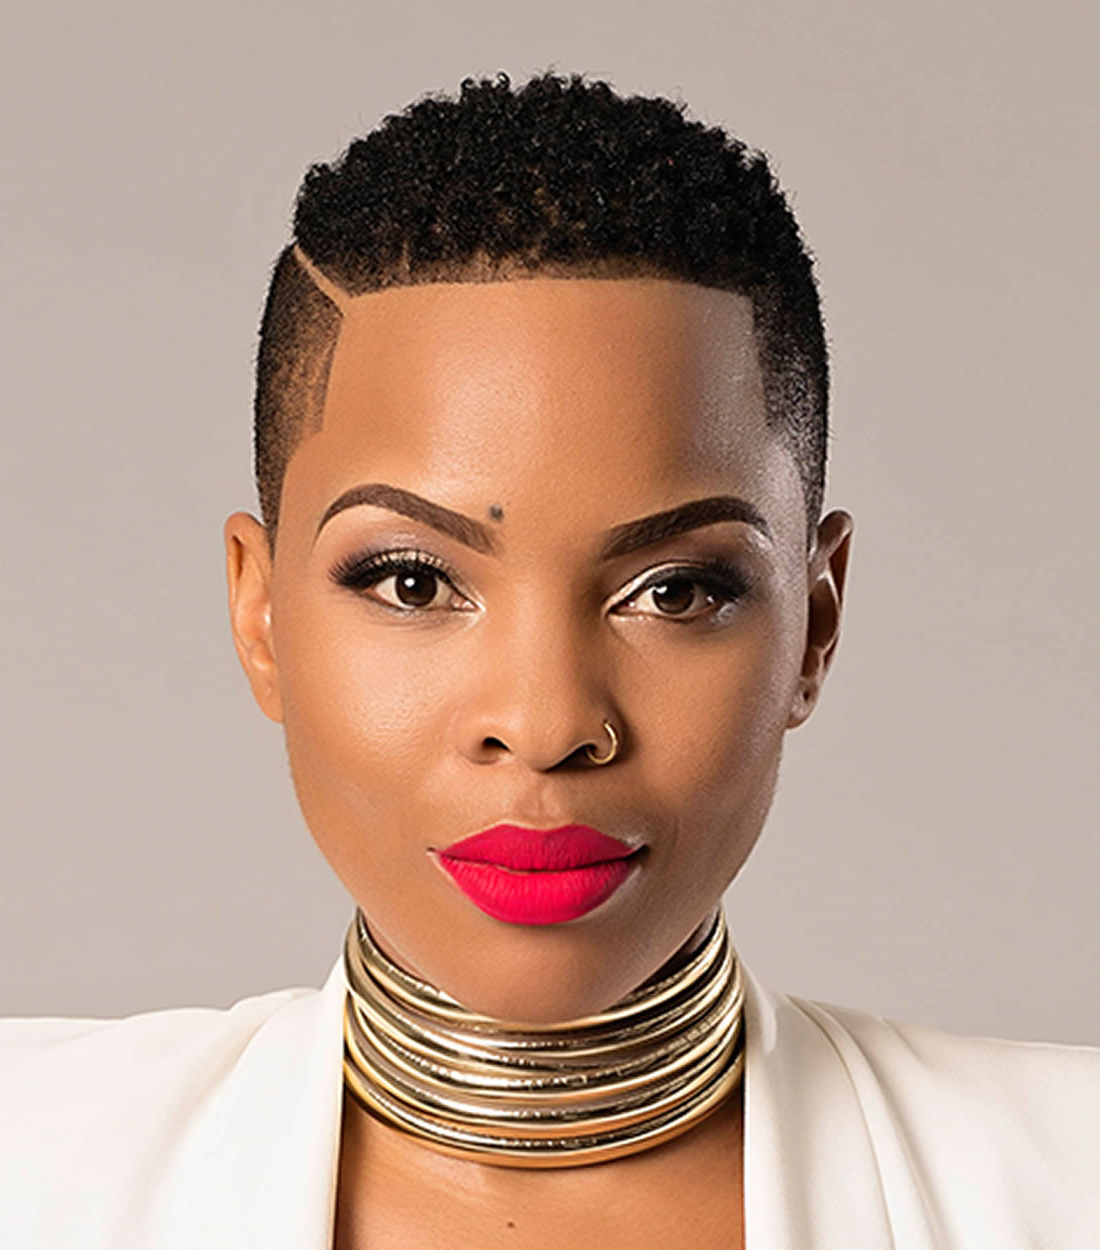 32 Exquisite African American Short Haircuts And Hairstyles For 2018 Regarding African American Short Haircuts For Round Faces (View 5 of 25)